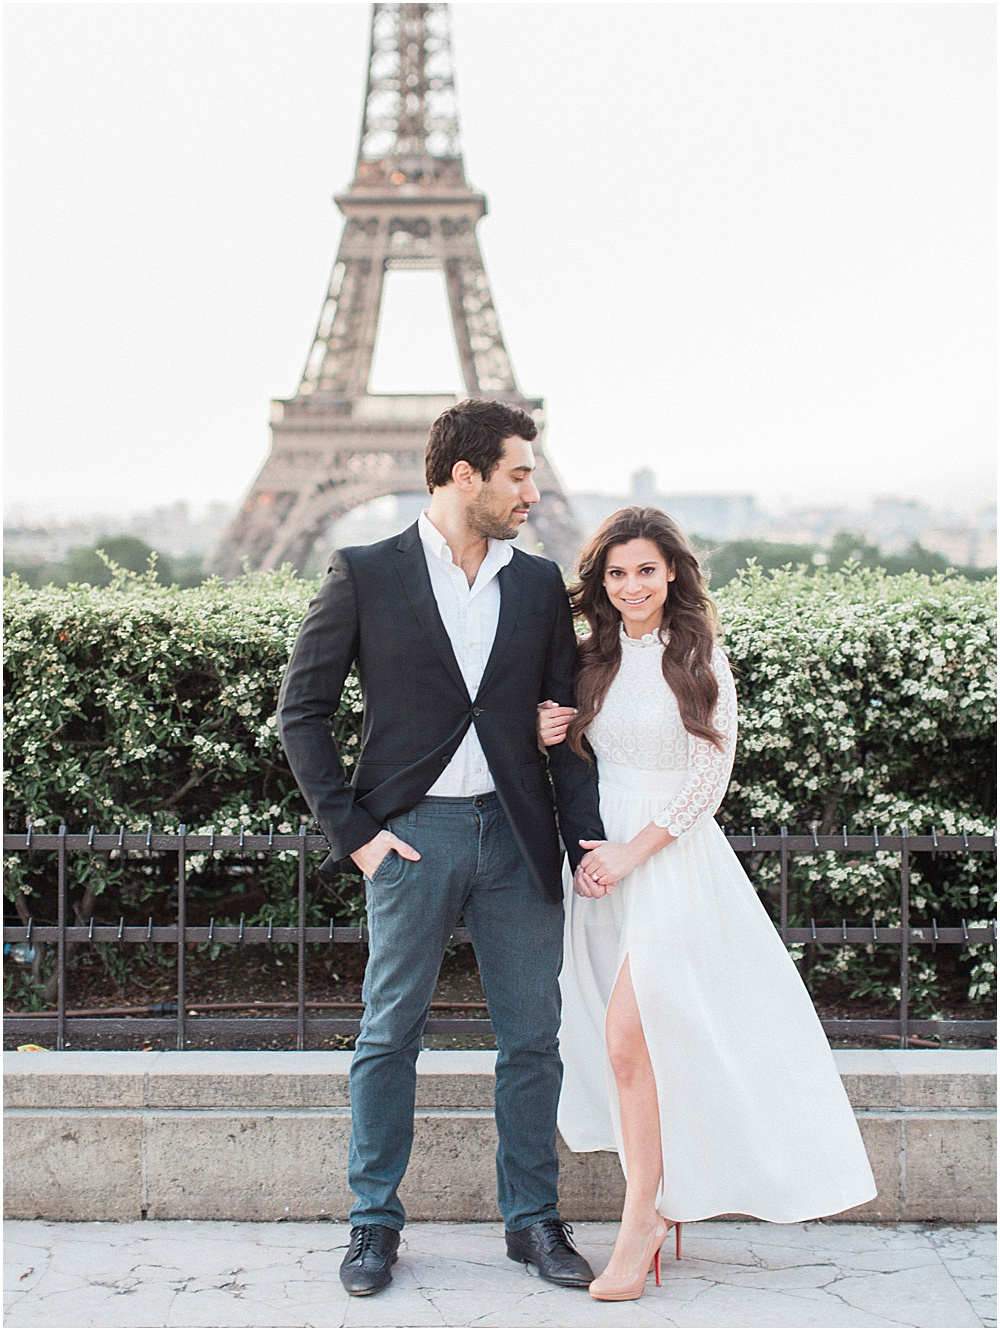 Trocadero_stairs_paris_white_gown_destination_pre_wedding_spring_engagement_session_boston_wedding_photographer_meredith_jane_photography_photo_0213.jpg